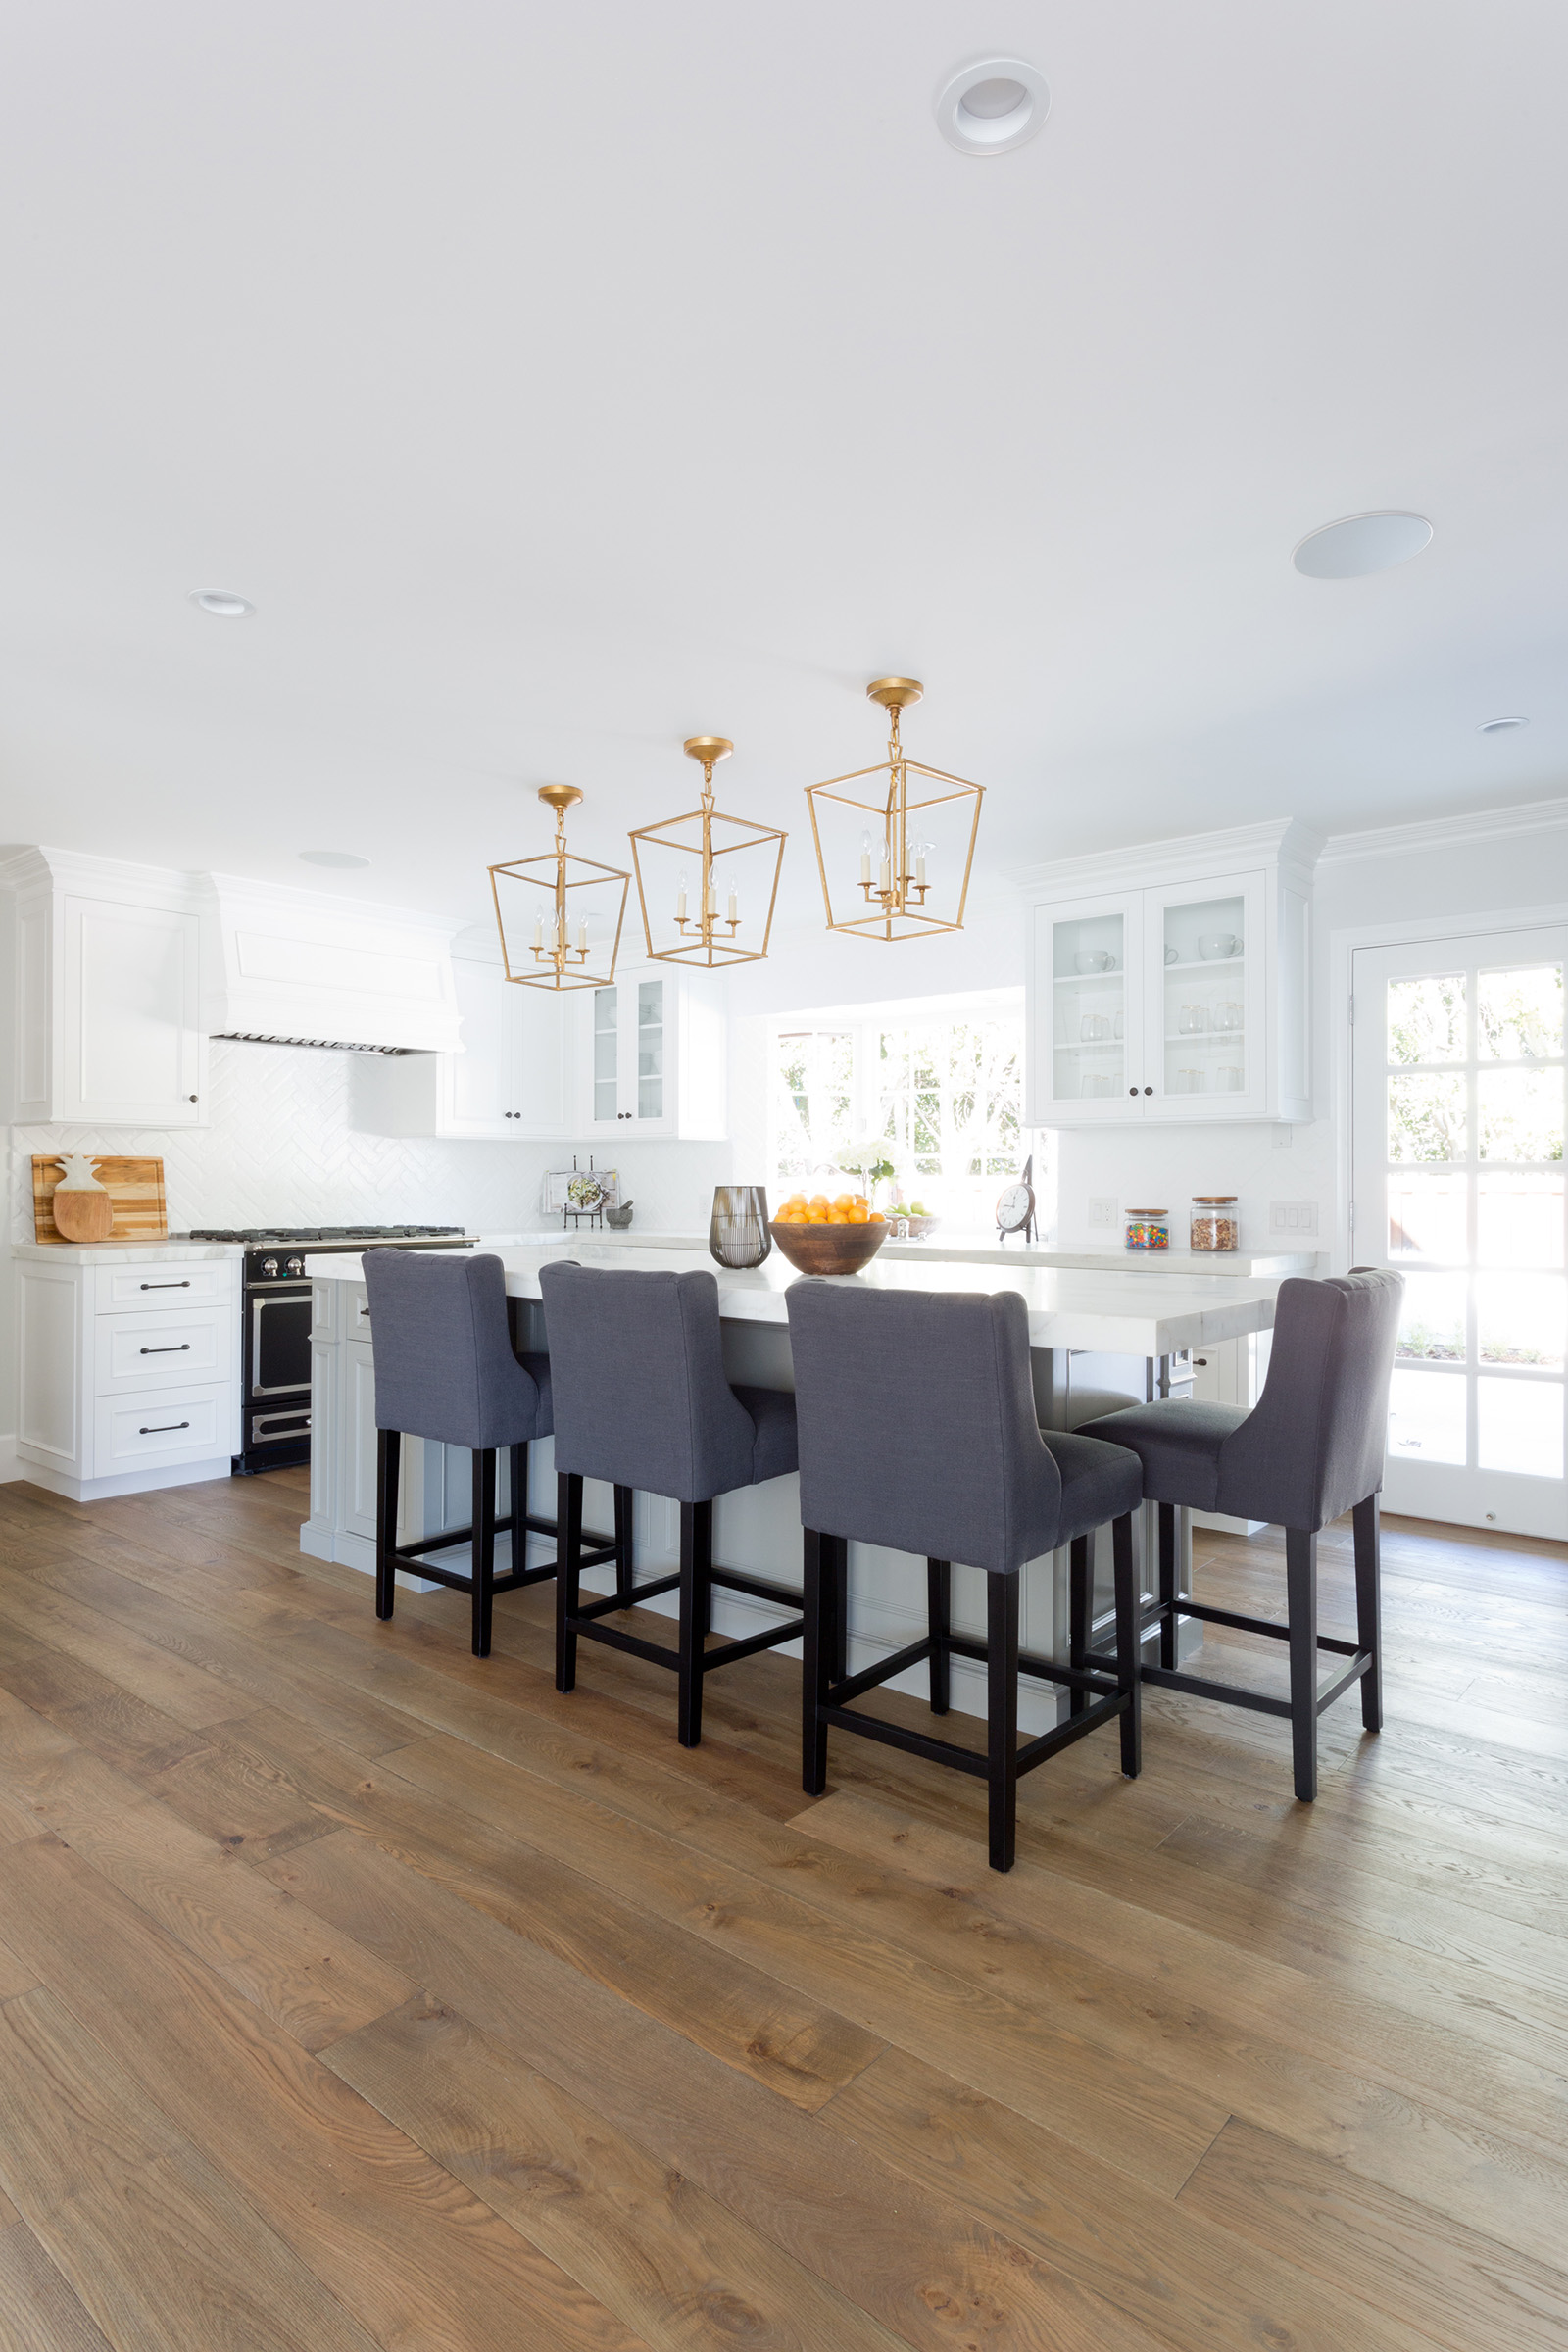 Project Back Bay by Blackband Design